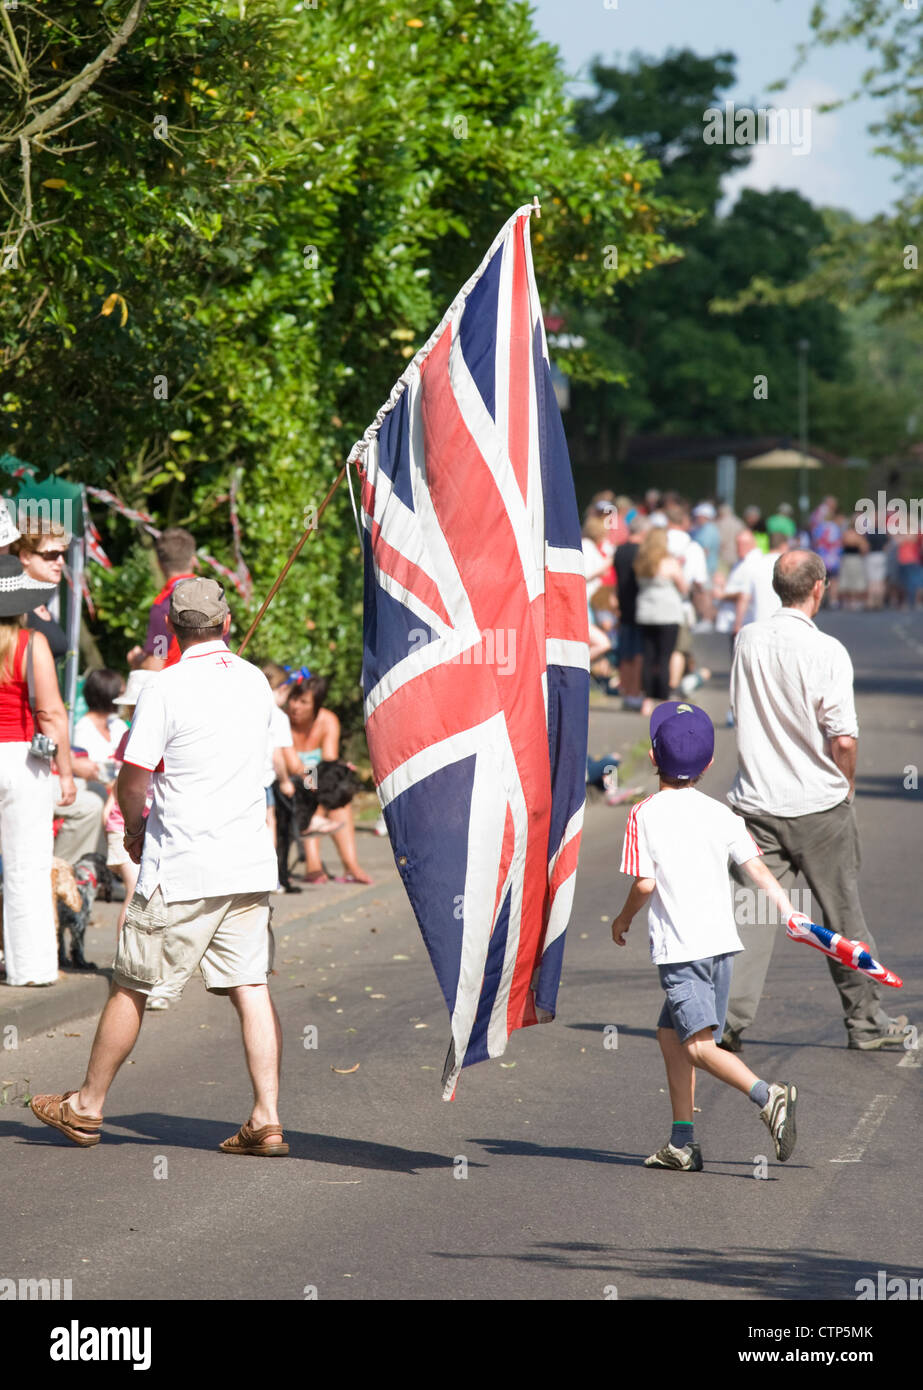 London 2012 Olympic Games. Gathering for men's cycle road race at Ripley, Surrey. - Stock Image